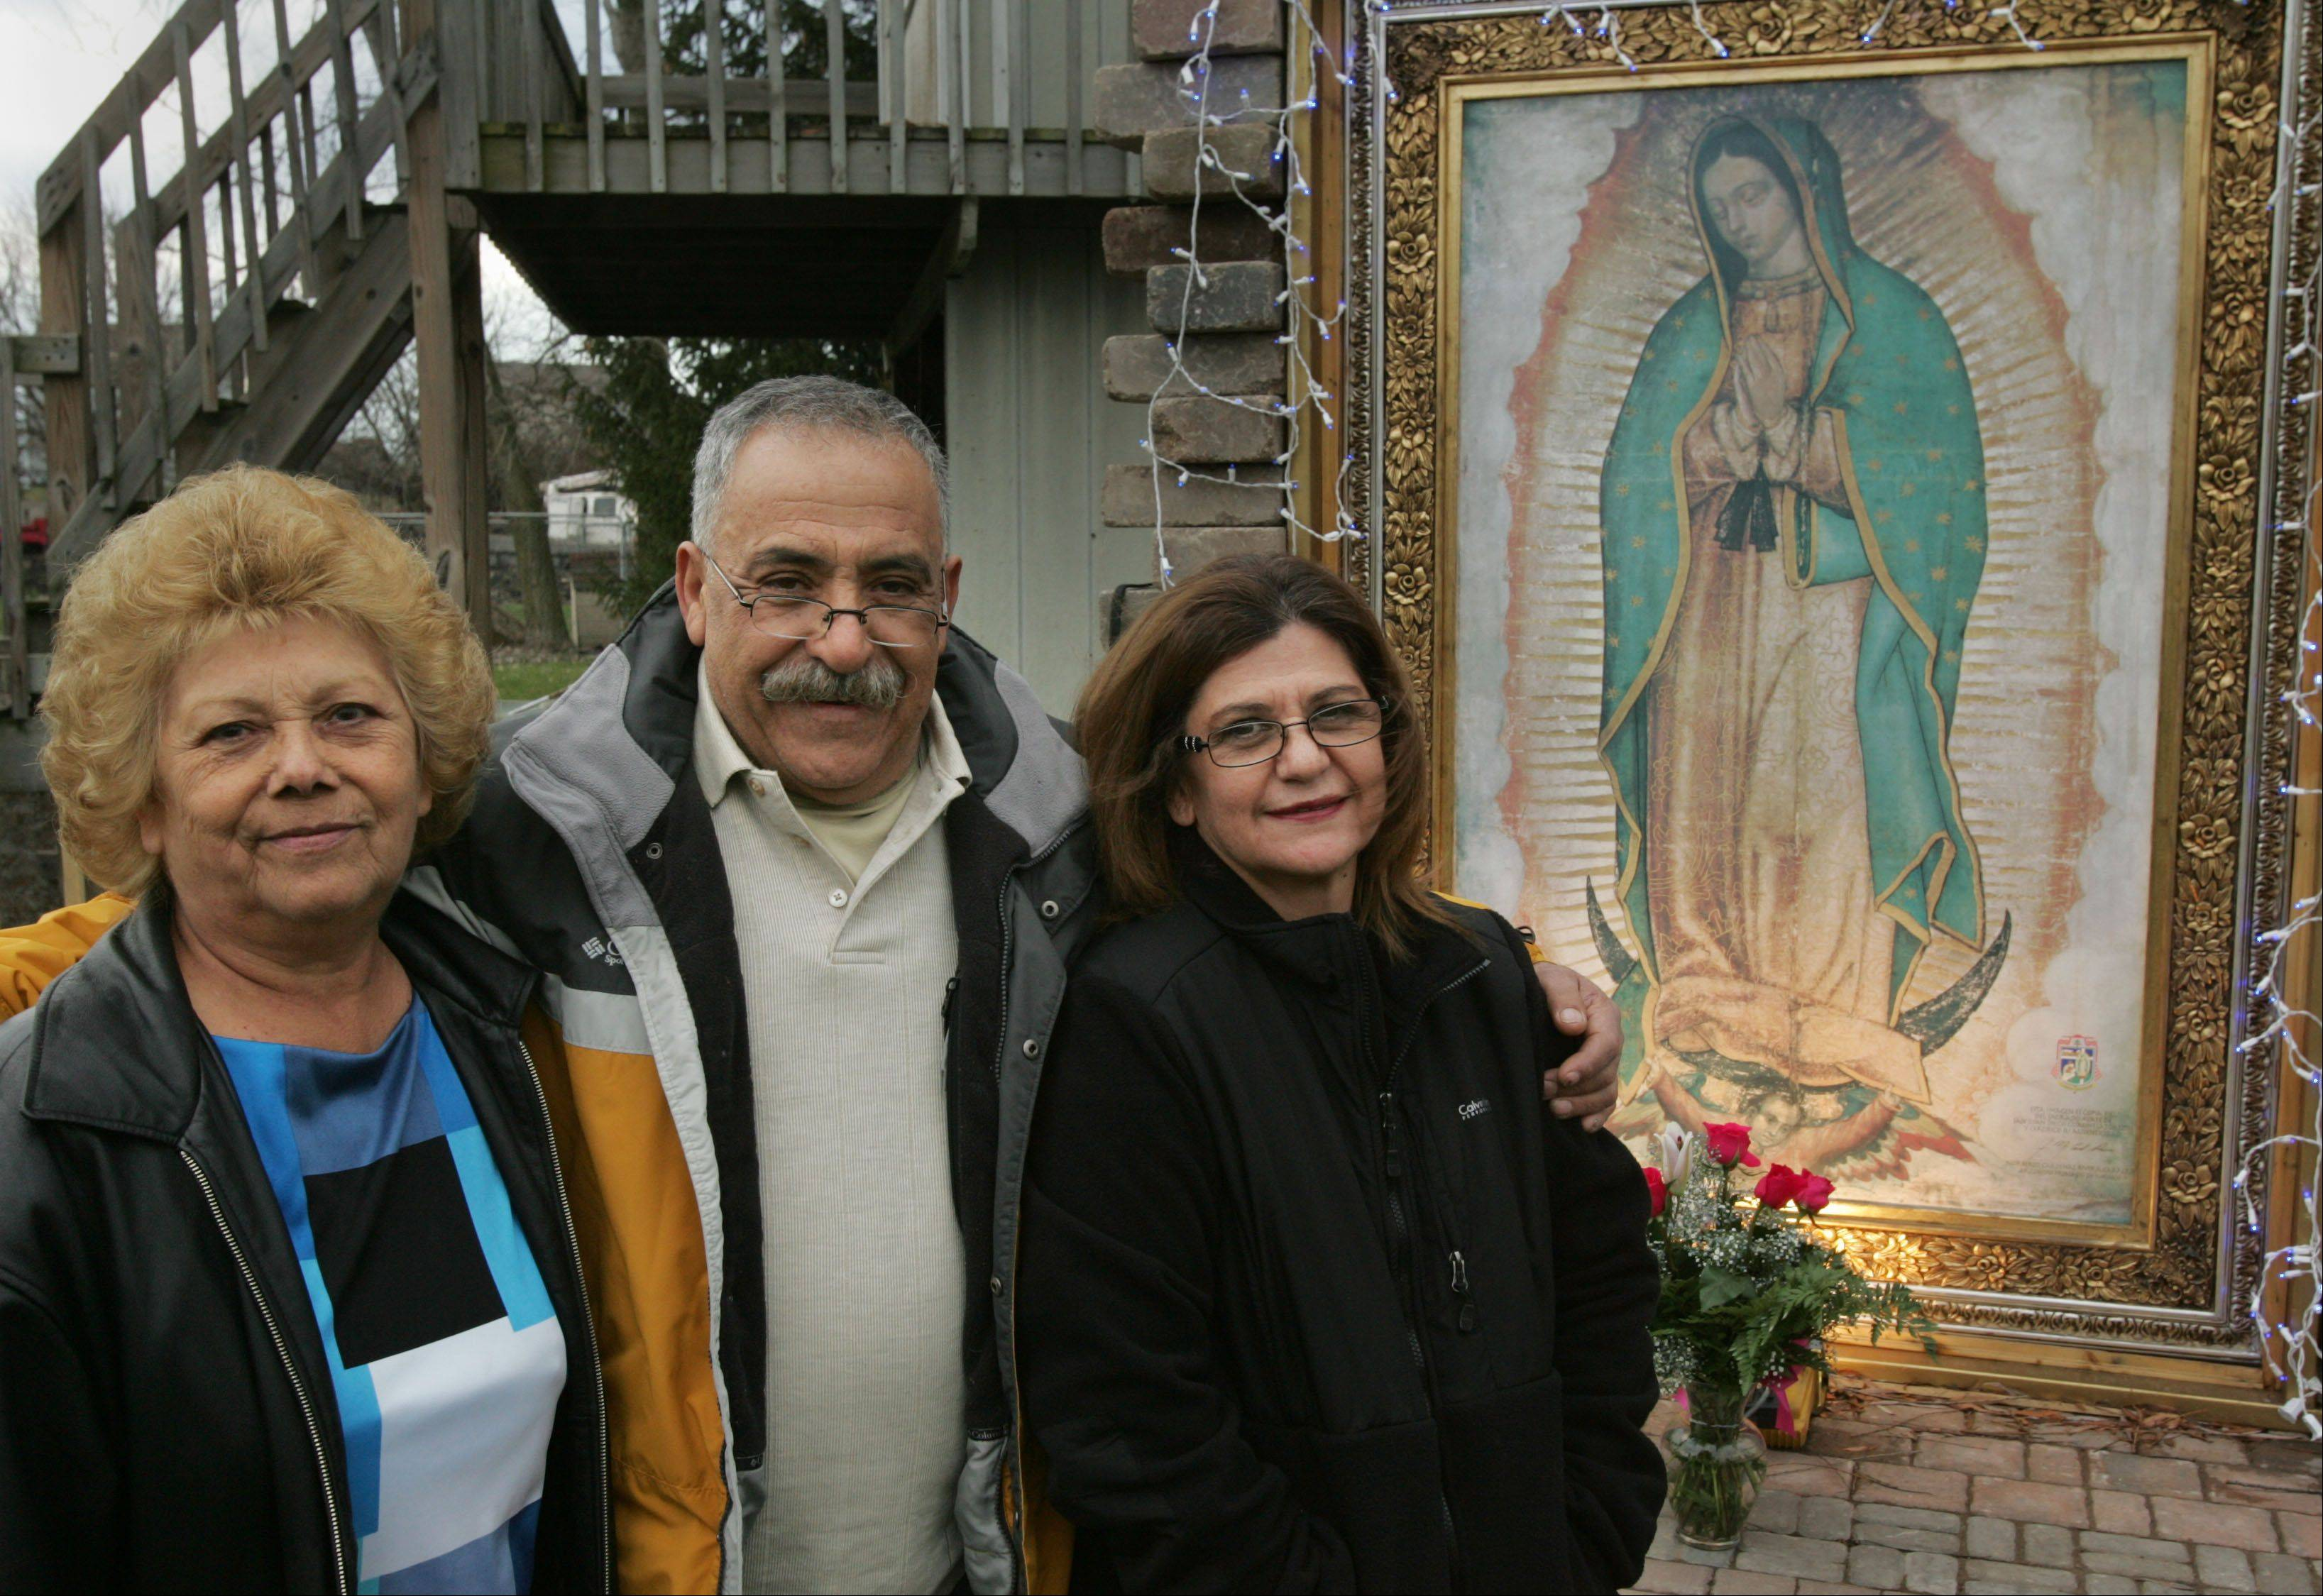 Elginites invited to Our Lady of Guadalupe feast